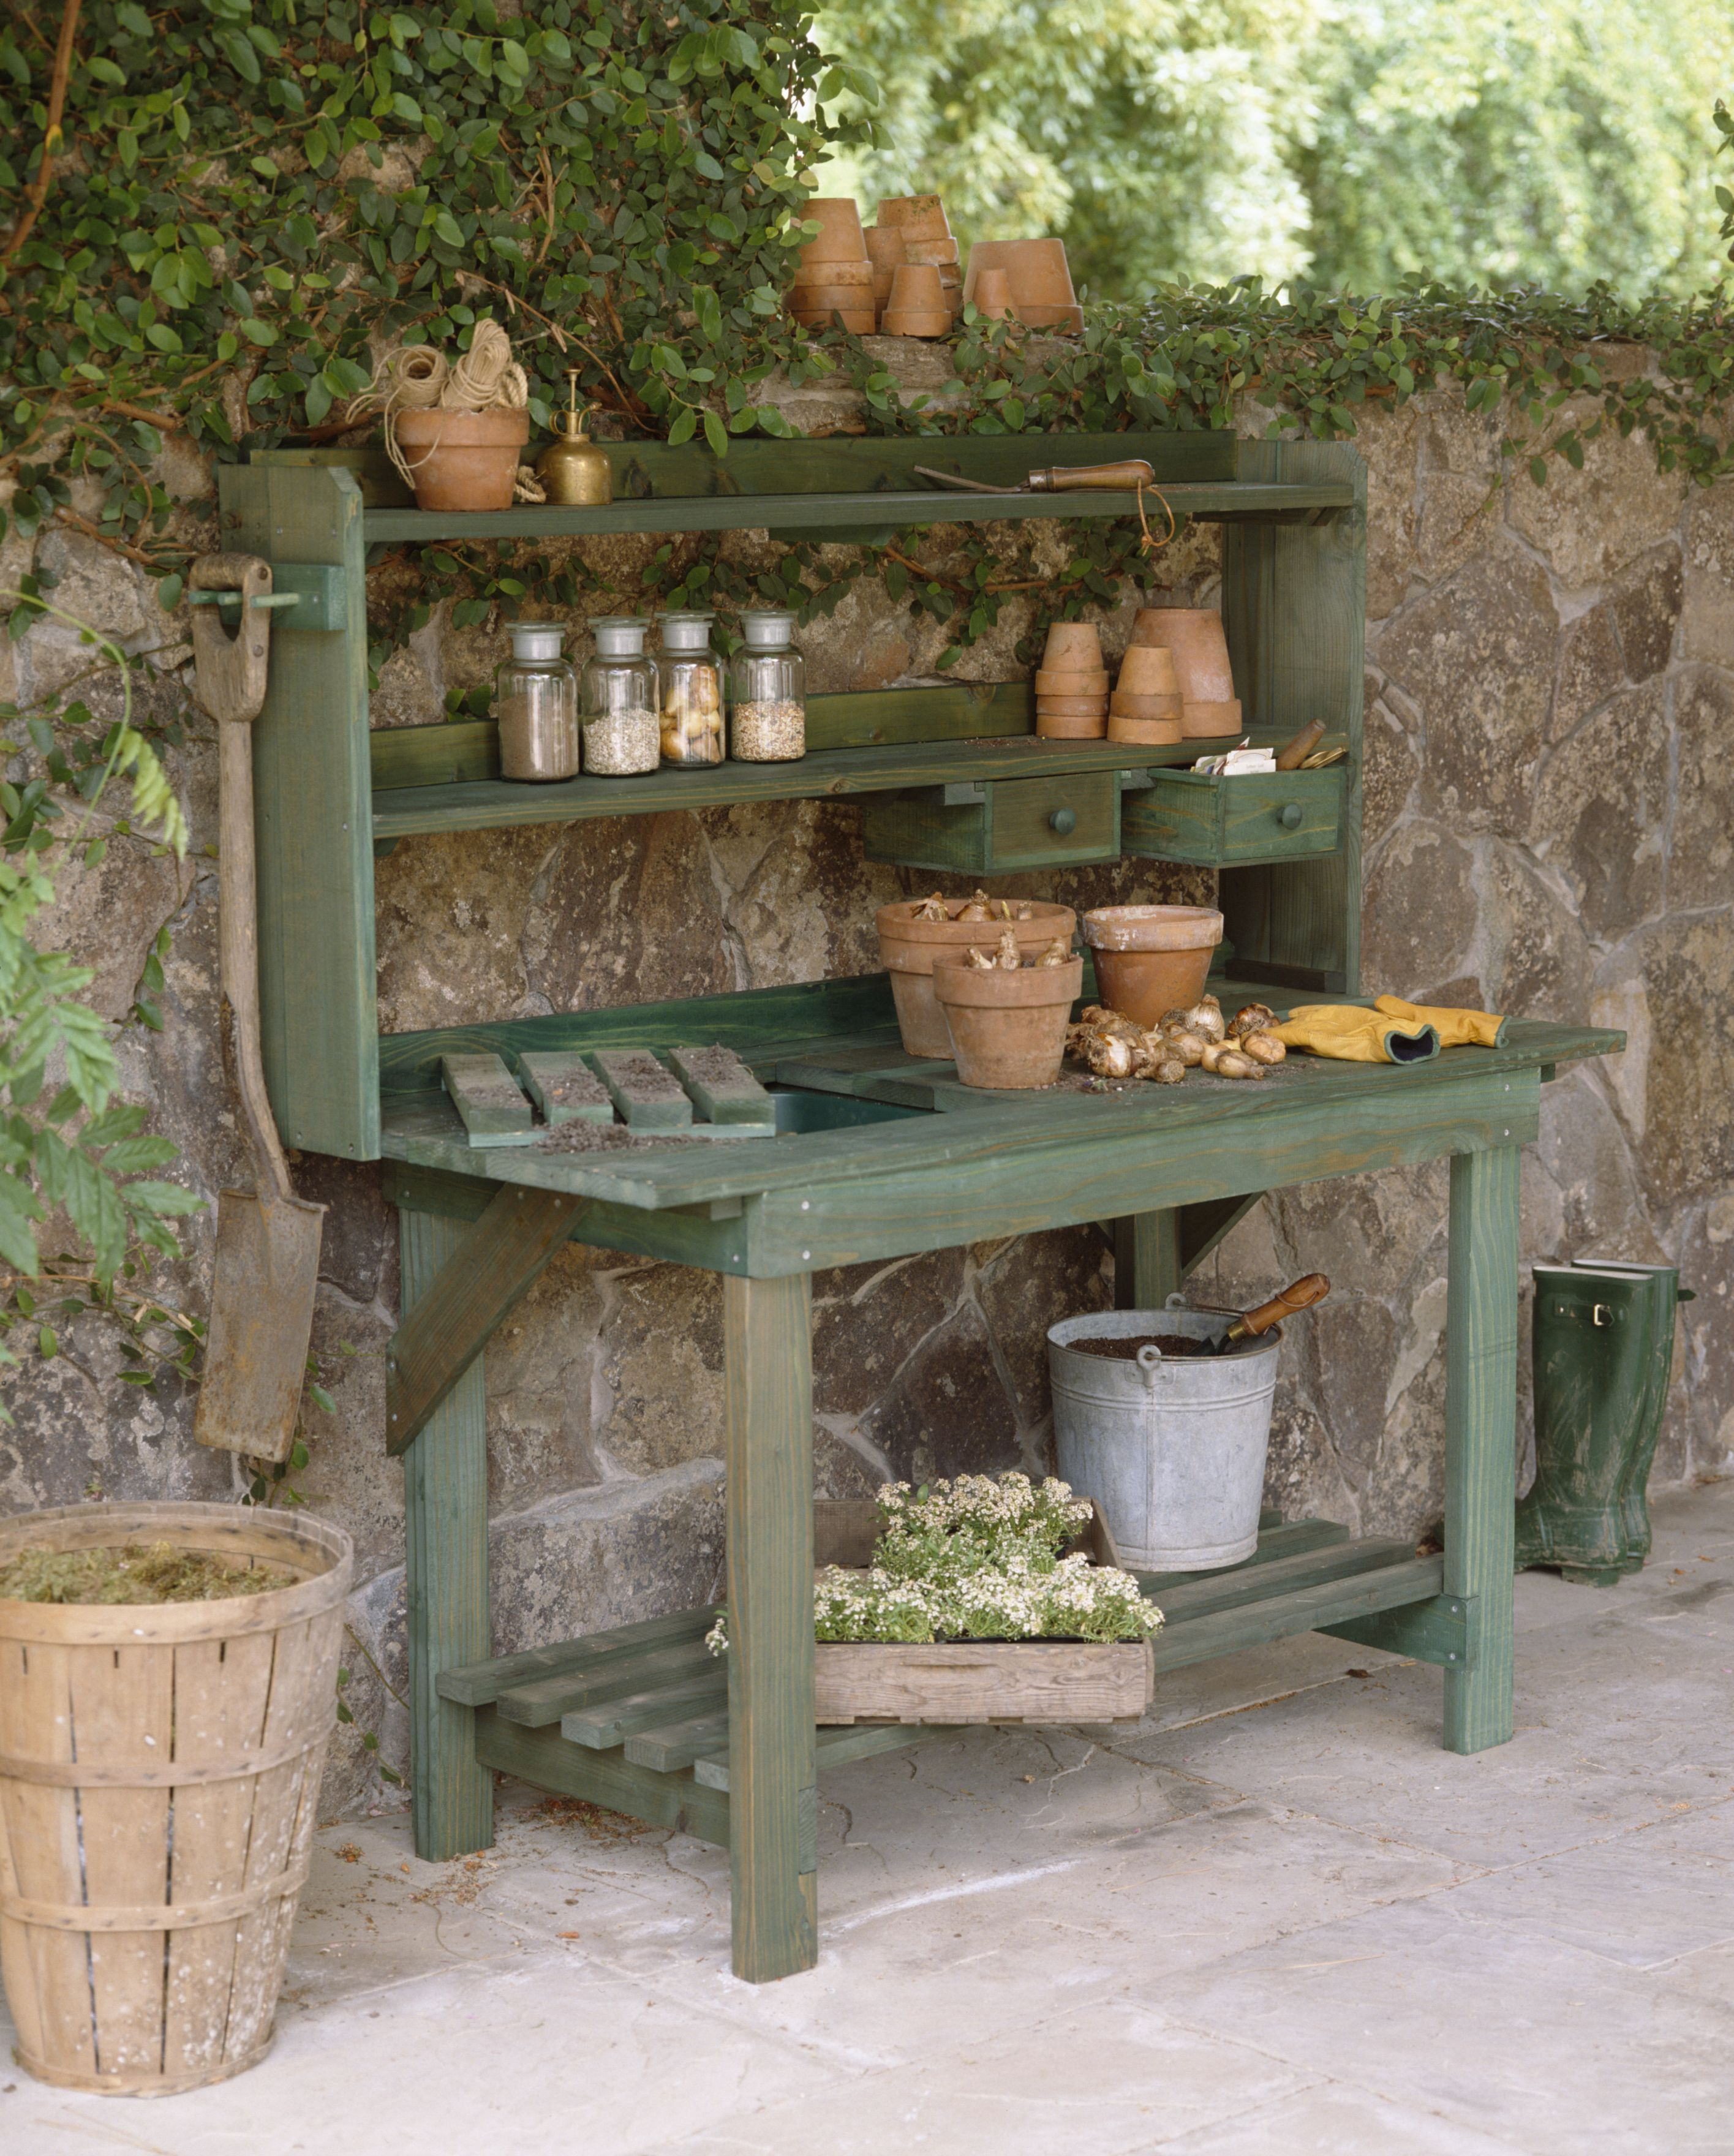 Create A Unique Place To Grow With These Free Potting Bench Plans